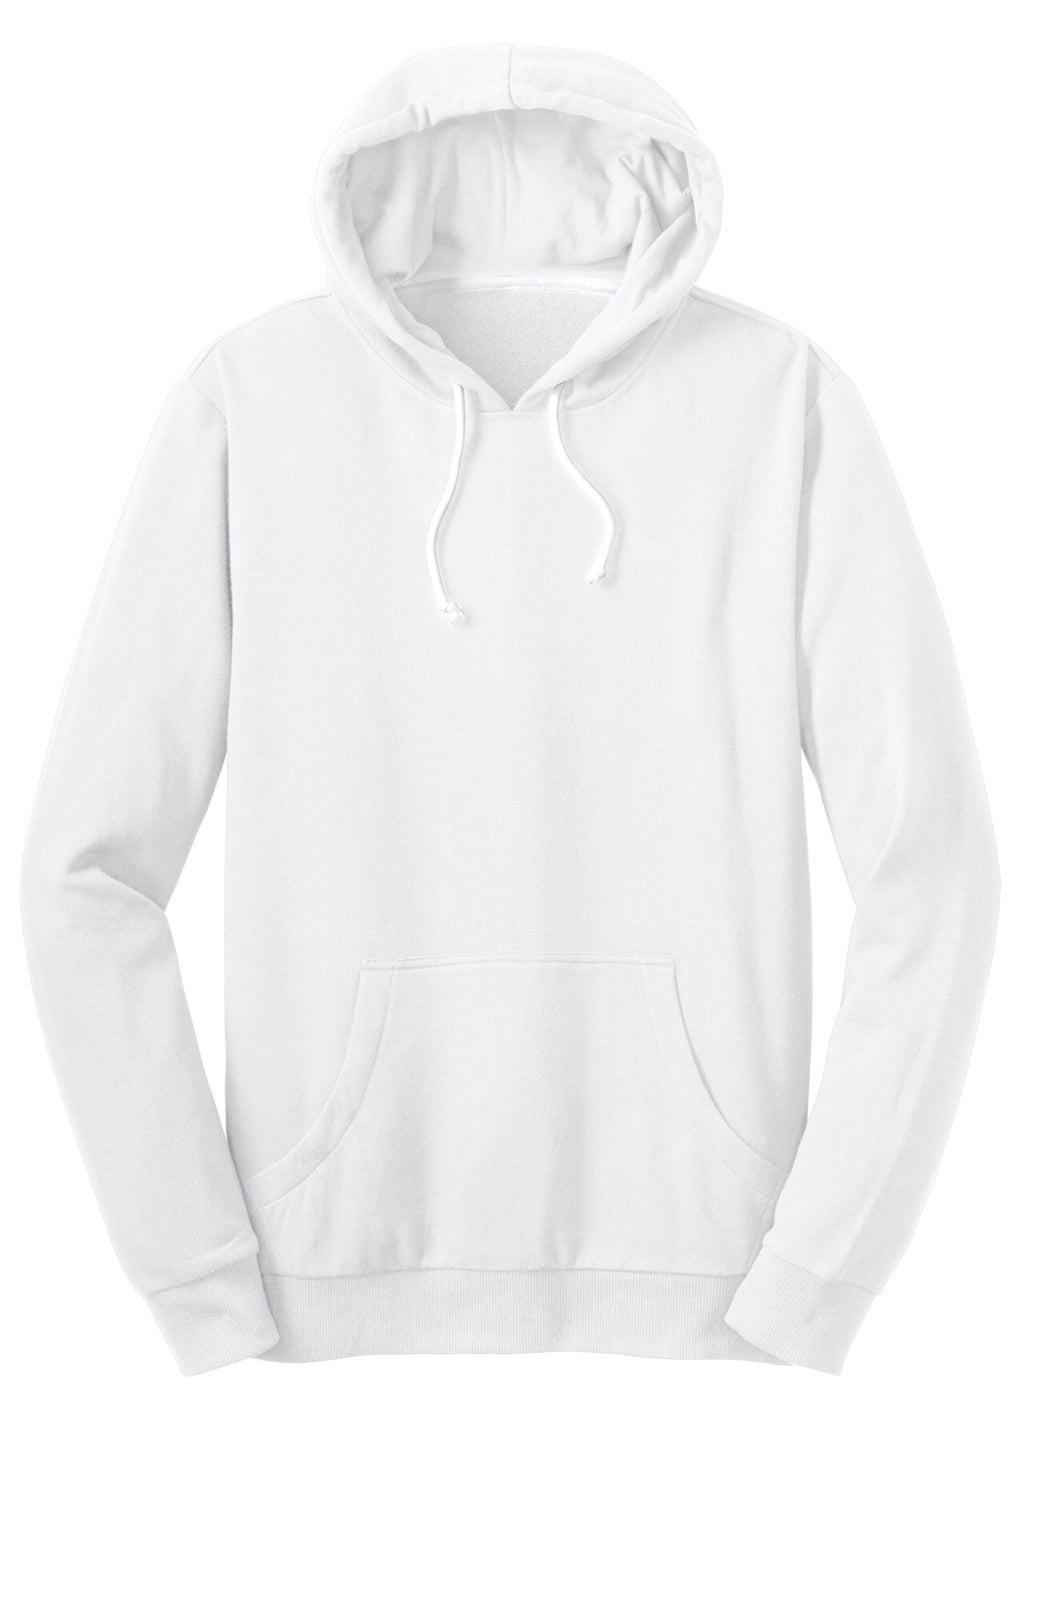 SIMPLICITY UNLIMITED — PULLOVER HOODIE // PURE WHITE